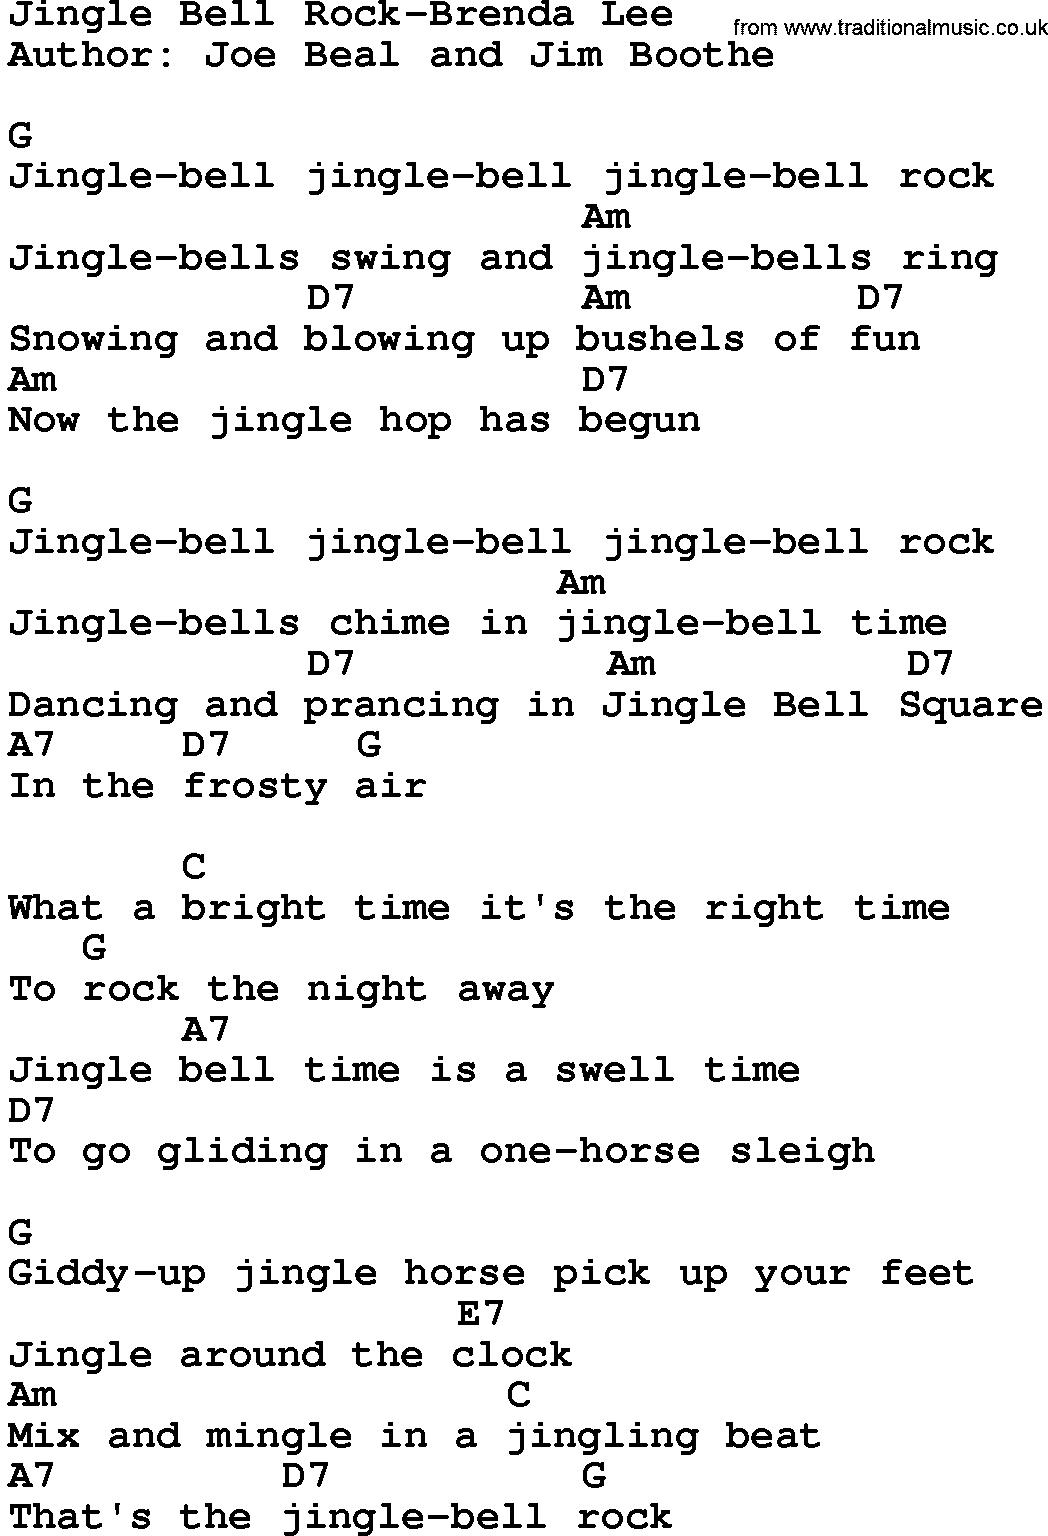 Country Music Song Jingle Bell Rock Brenda Lee Lyrics And Chords Lyrics And Chords Guitar Chords And Lyrics Song Lyrics And Chords